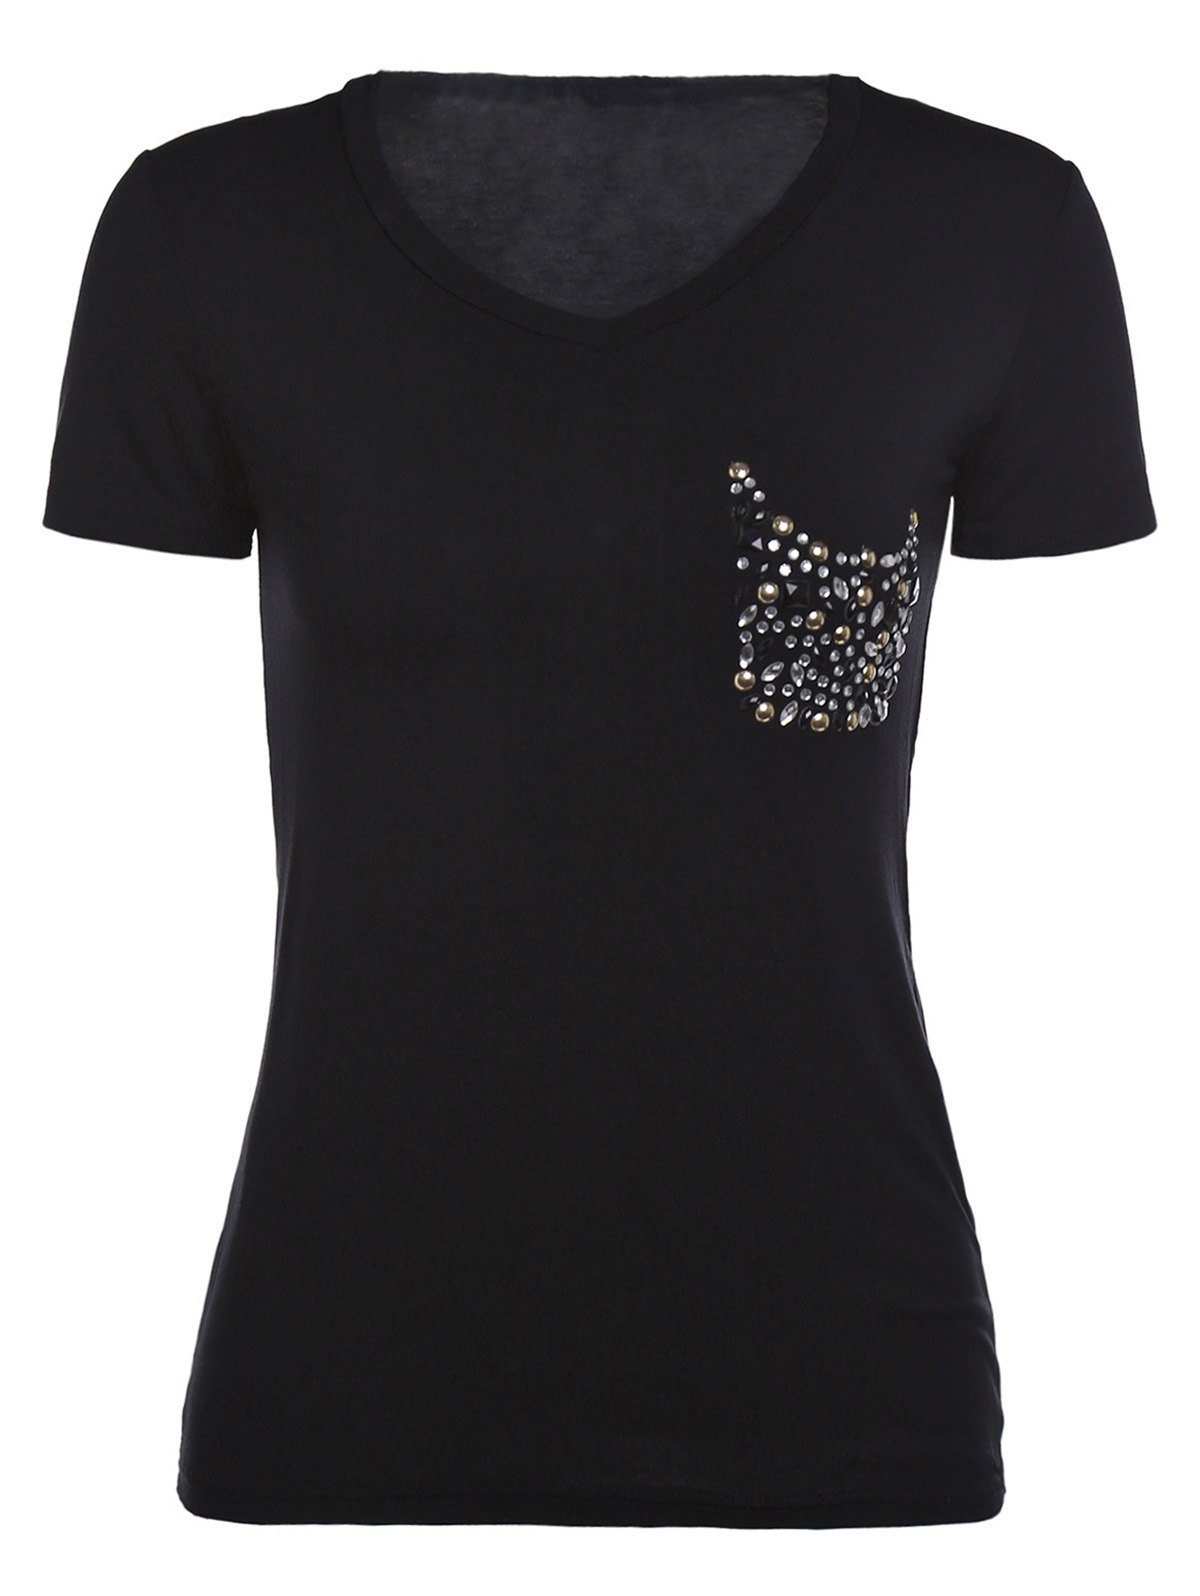 Simple Rhinestoned Short Sleeve V-Neck Women's T-Shirt - L BLACK